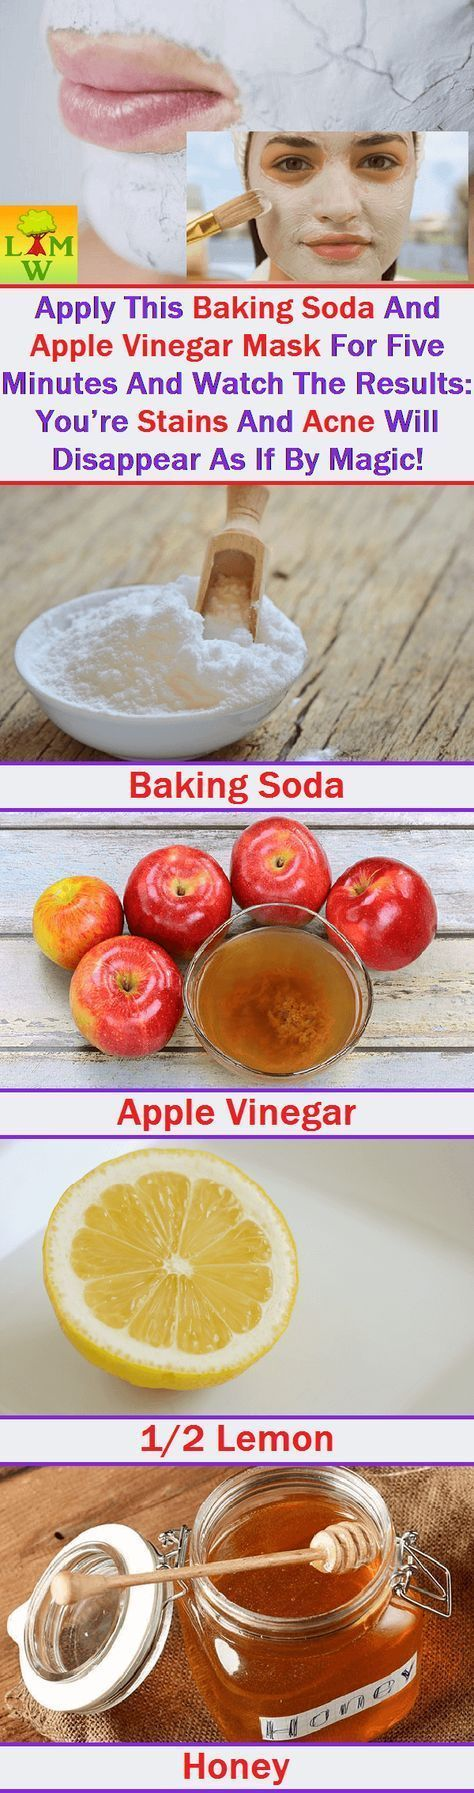 Baking Soda + Apple Vinegar Mask = Good bye stains and acne! Visit https://www.protegebeauty.com/ and check out our top rated beauty products.